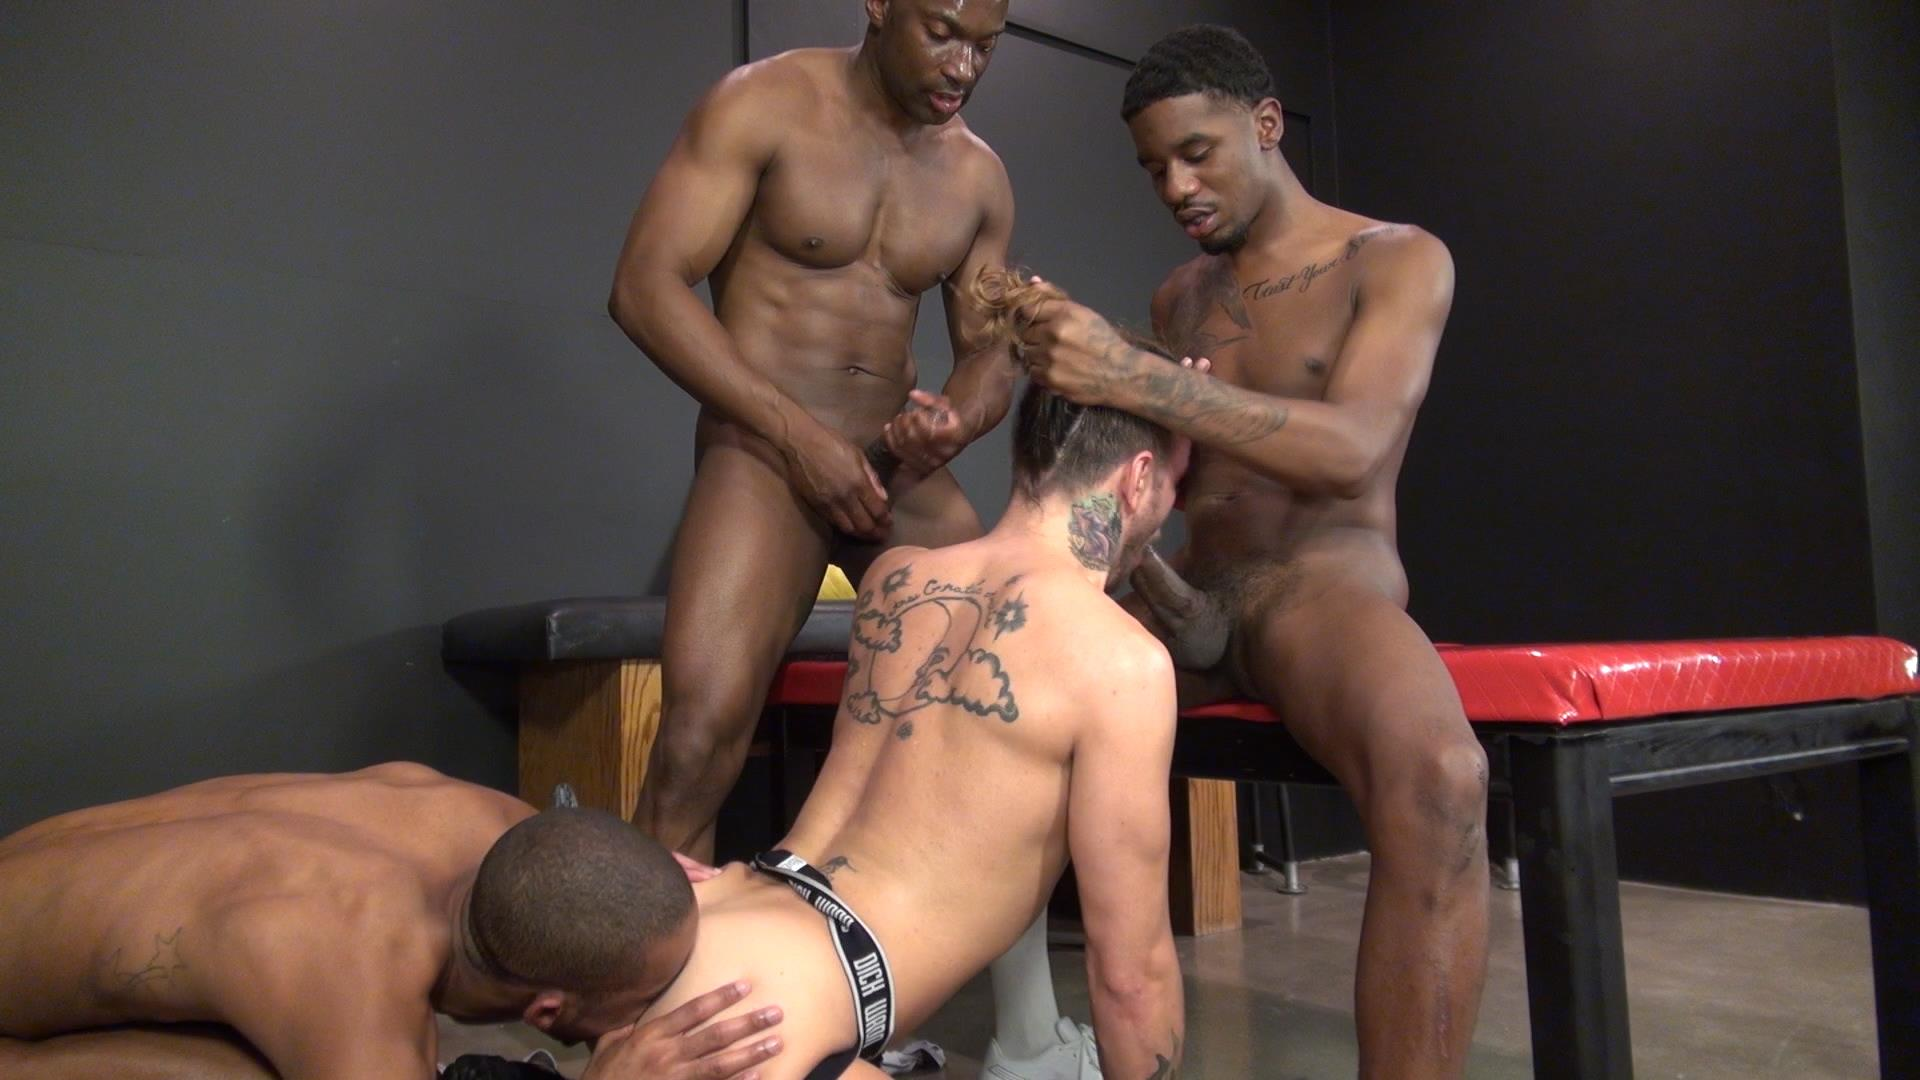 Raw-and-Rough-Champ-Robinson-Lukas-Cipriani-Knockout-Tigger-Redd-BBBH-Amateur-Gay-Porn-19 White Boy Gets A Breeding By Three Big Black Dicks